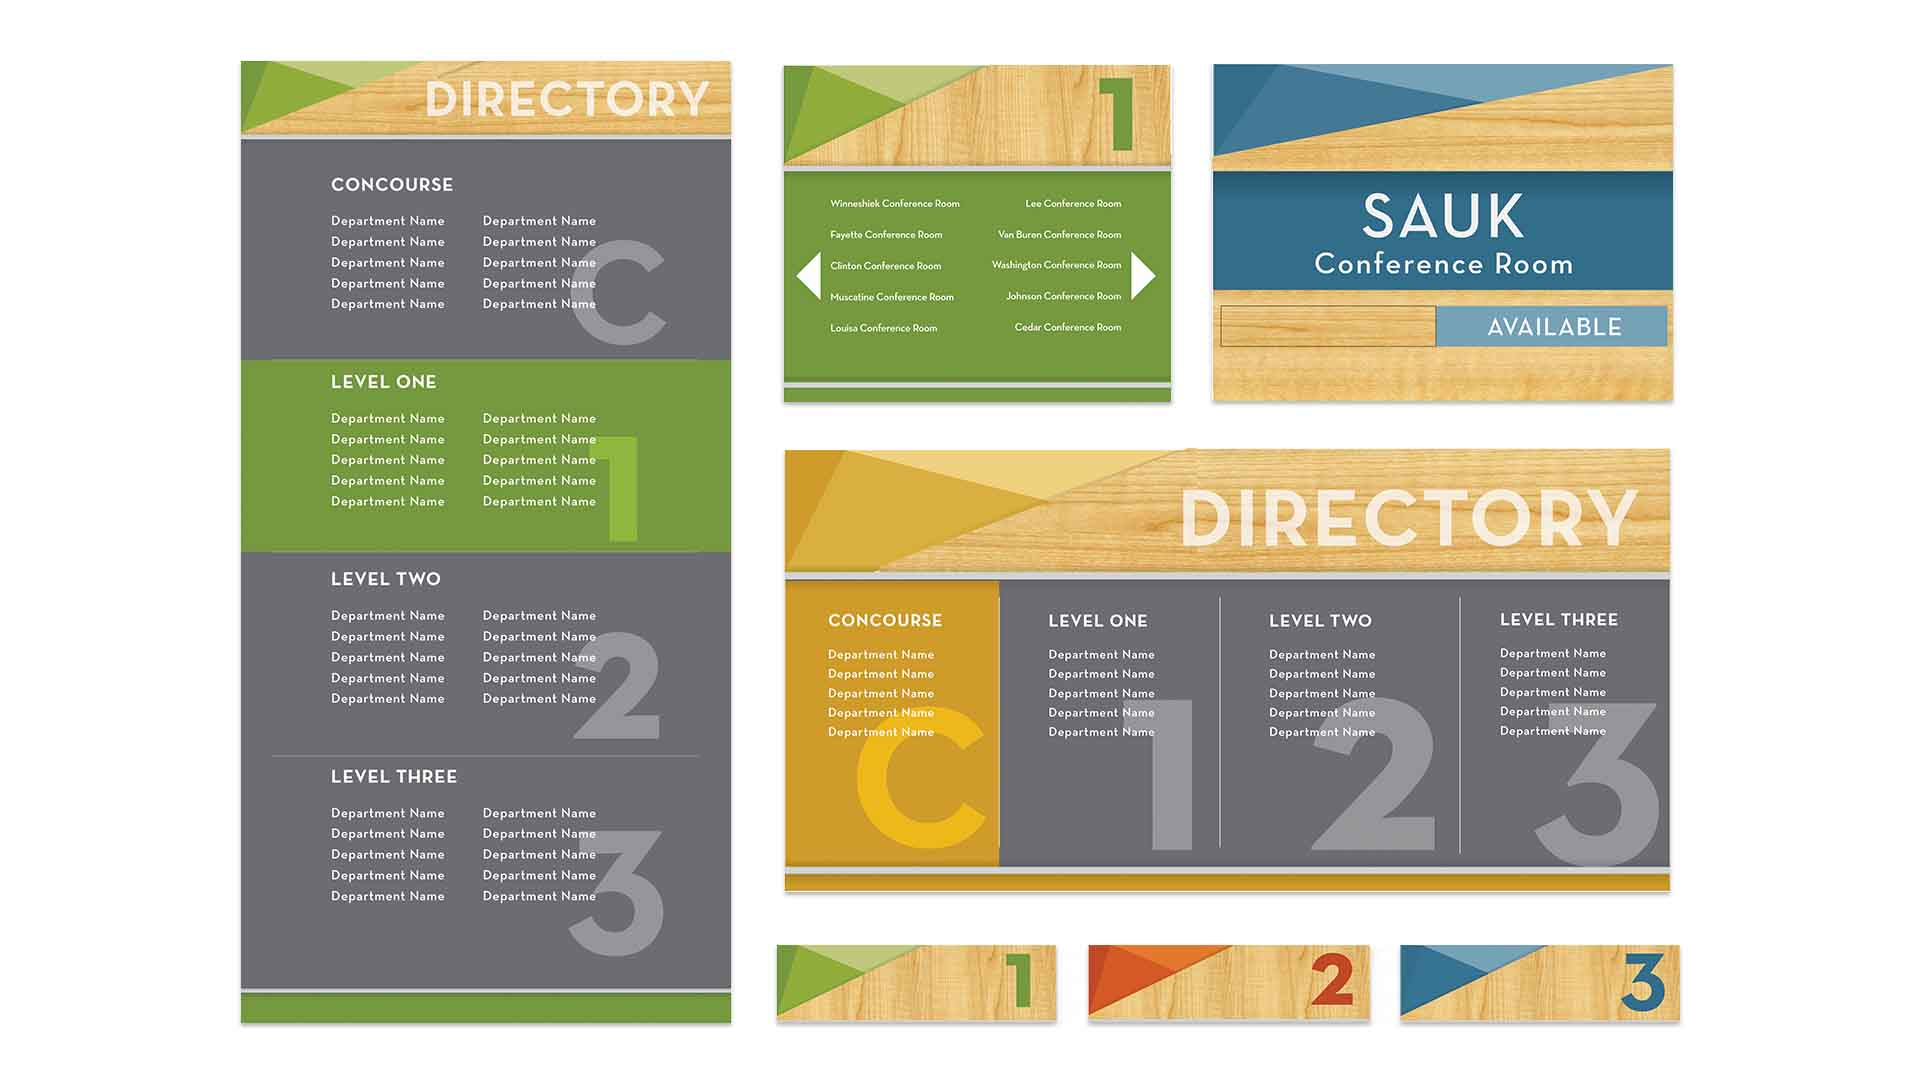 Wayfinding package with directory, room IDs, and floor IDs